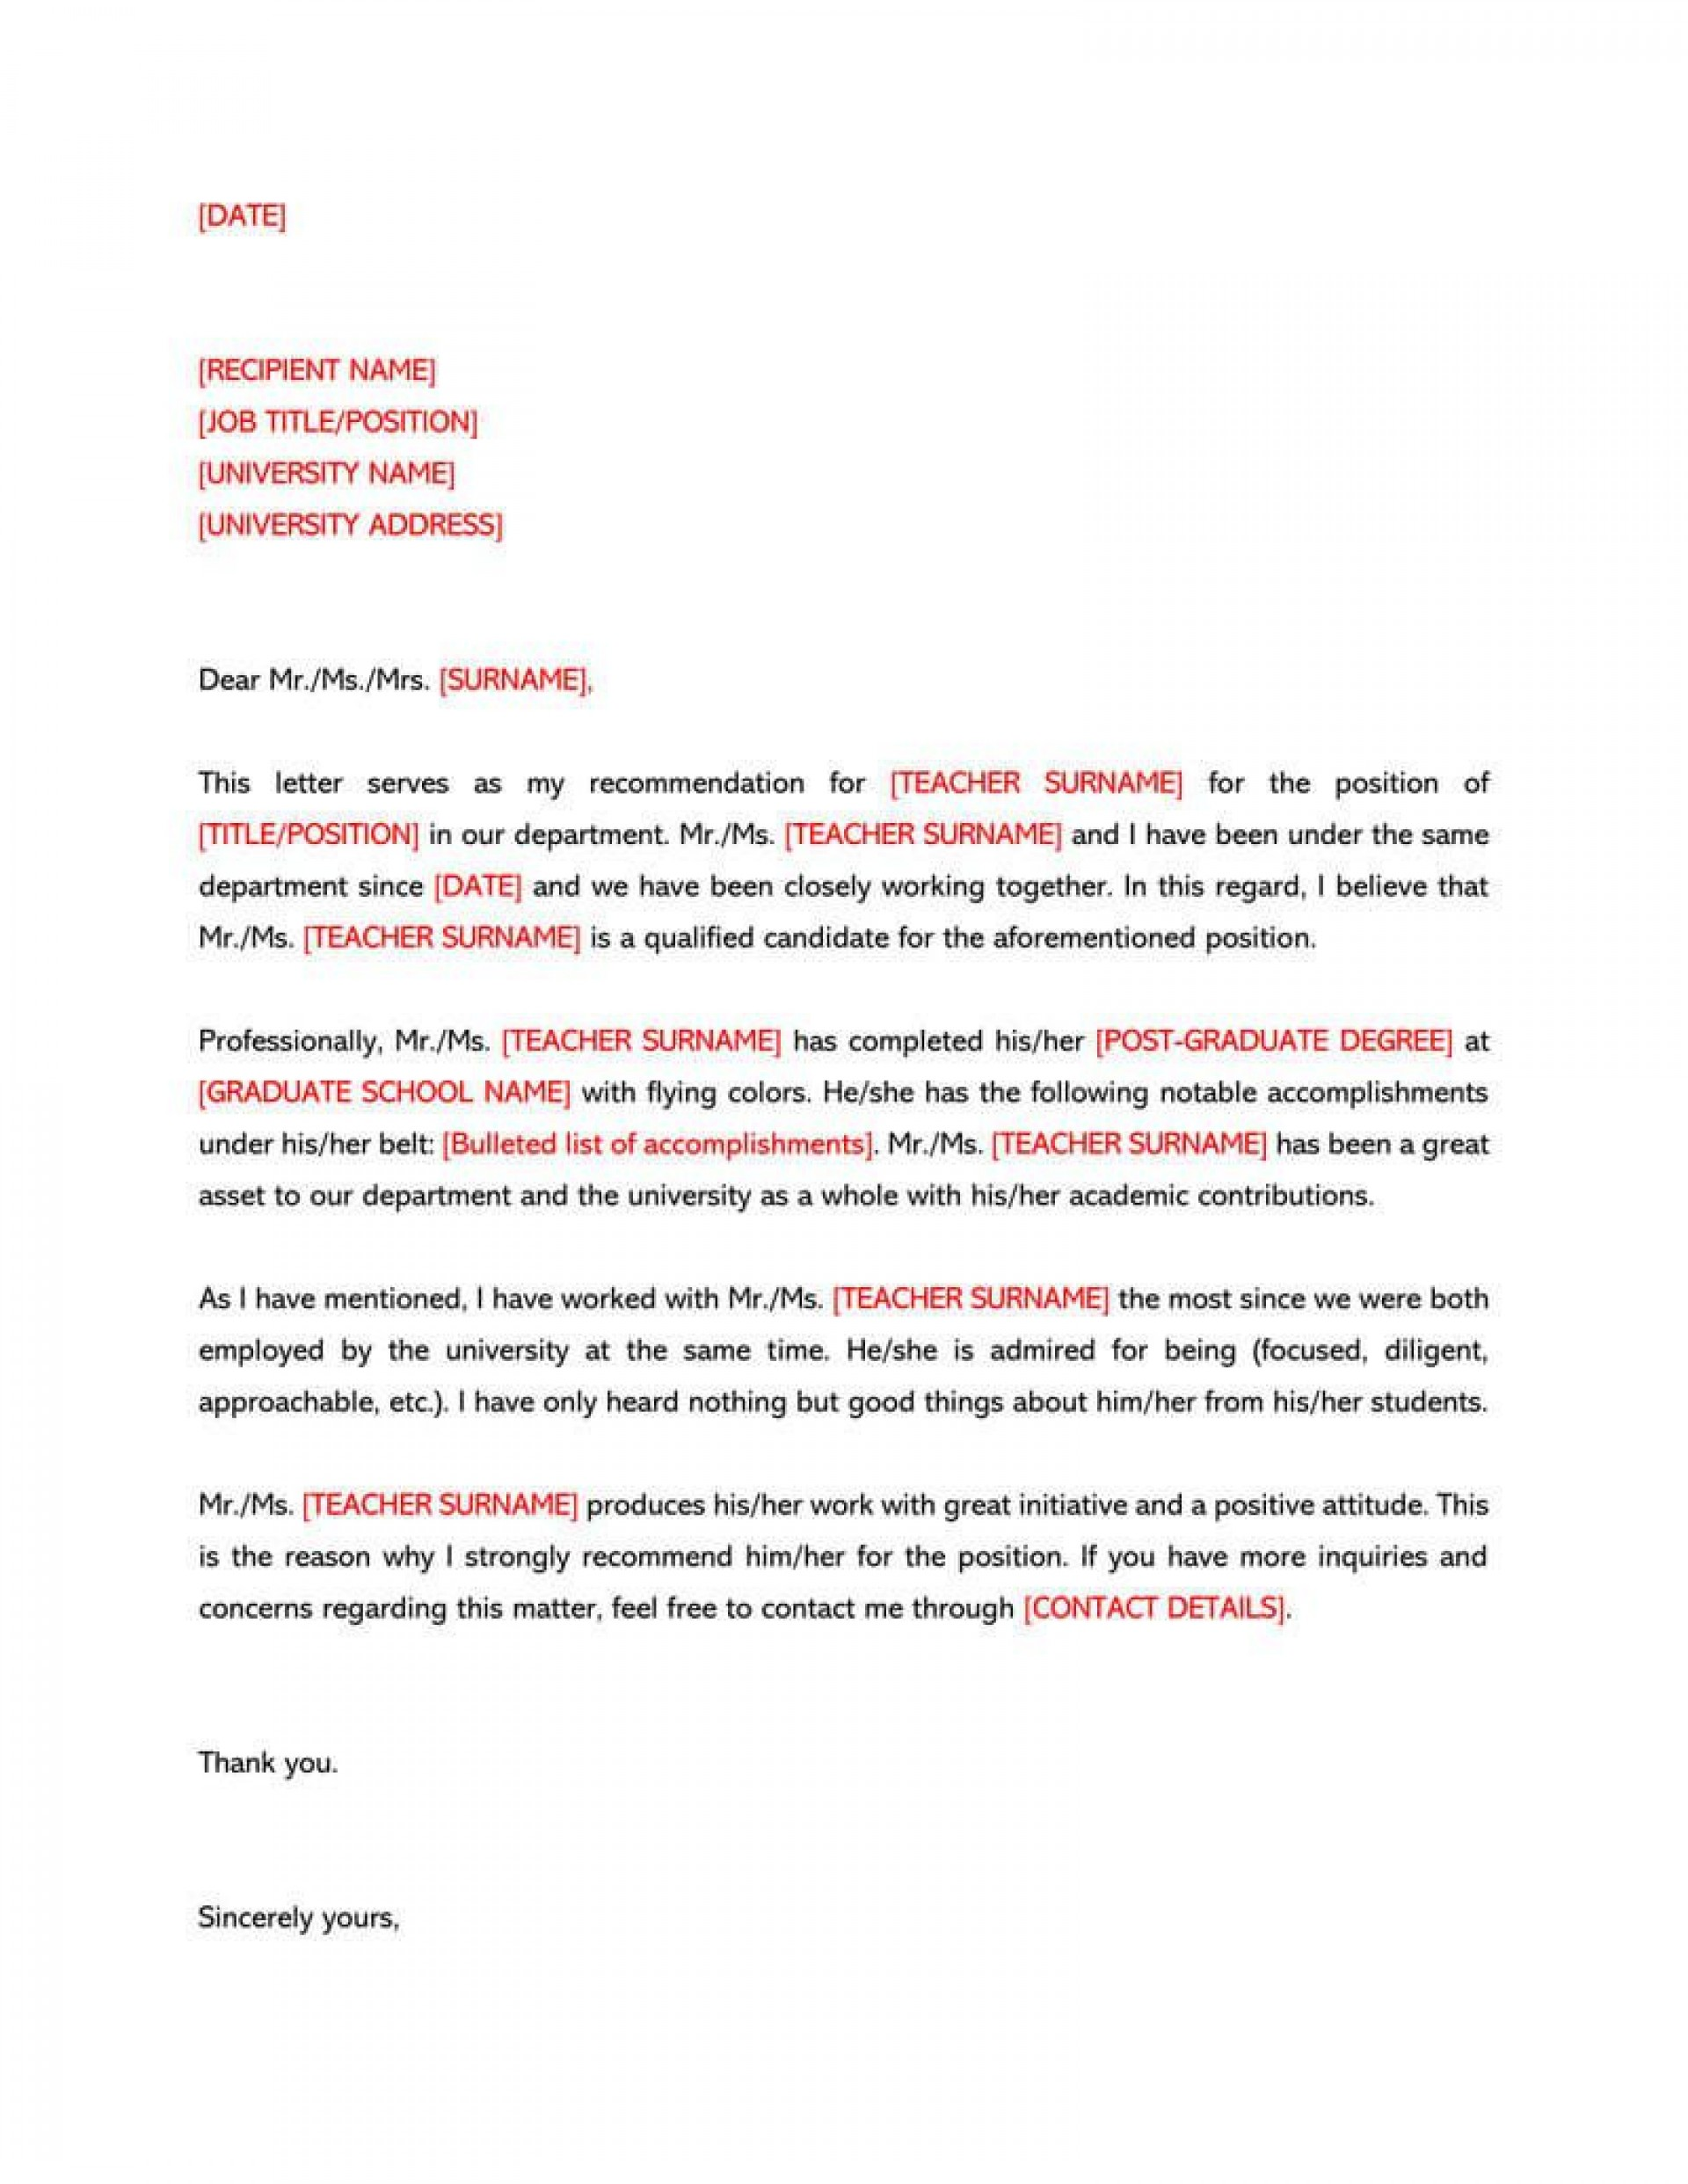 006 Shocking Letter Of Recommendation Template Design  For Teacher Student From Coach Word1920